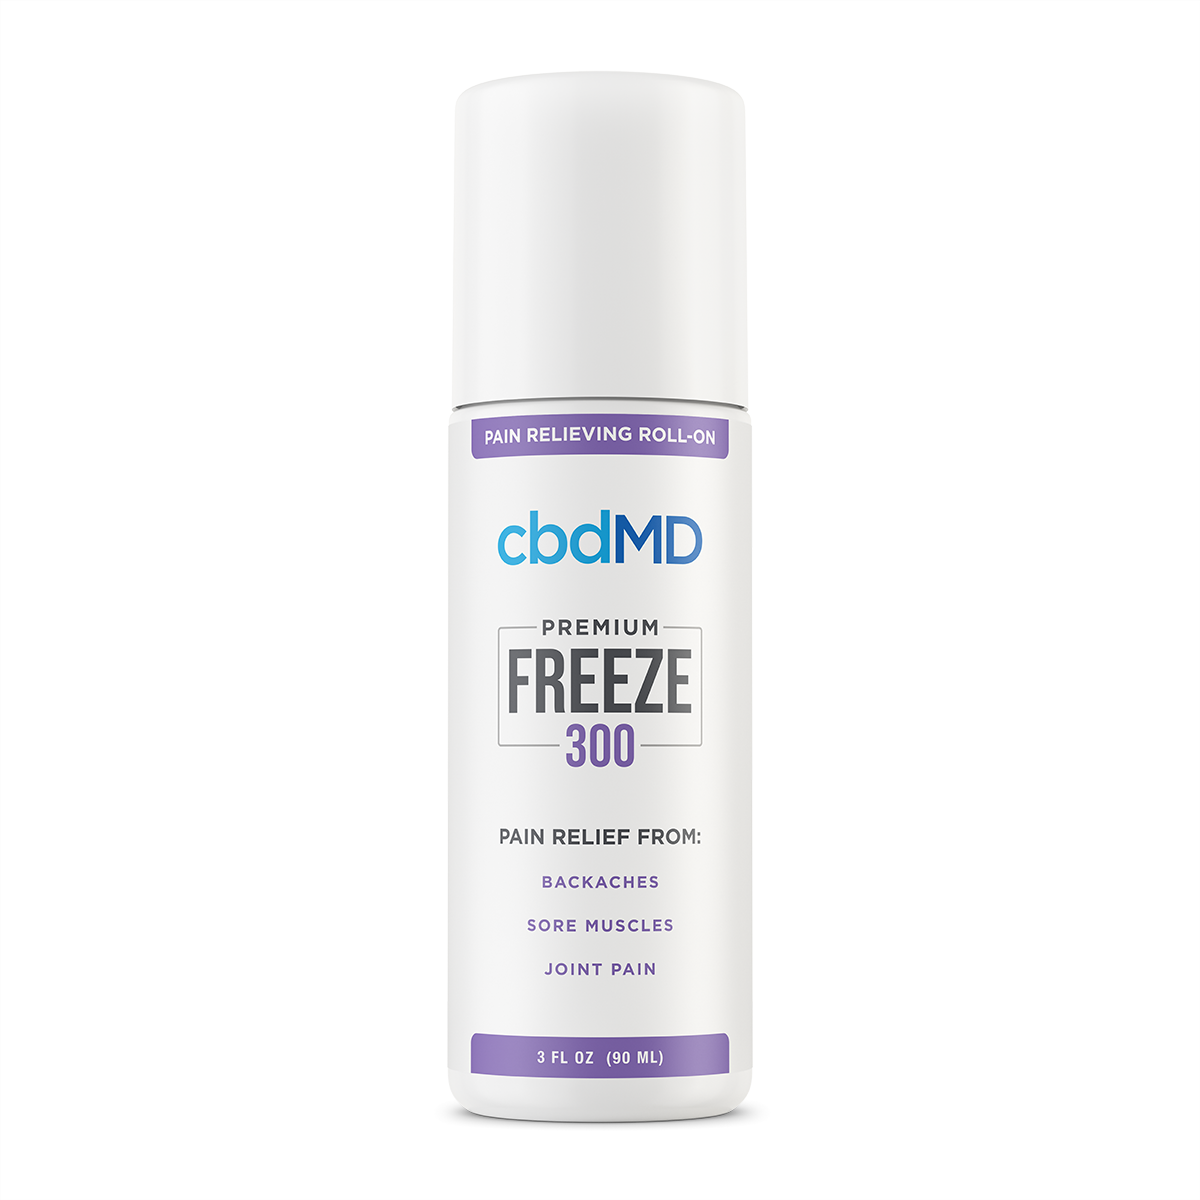 Product image of cbdMD 300MG Freeze Roller